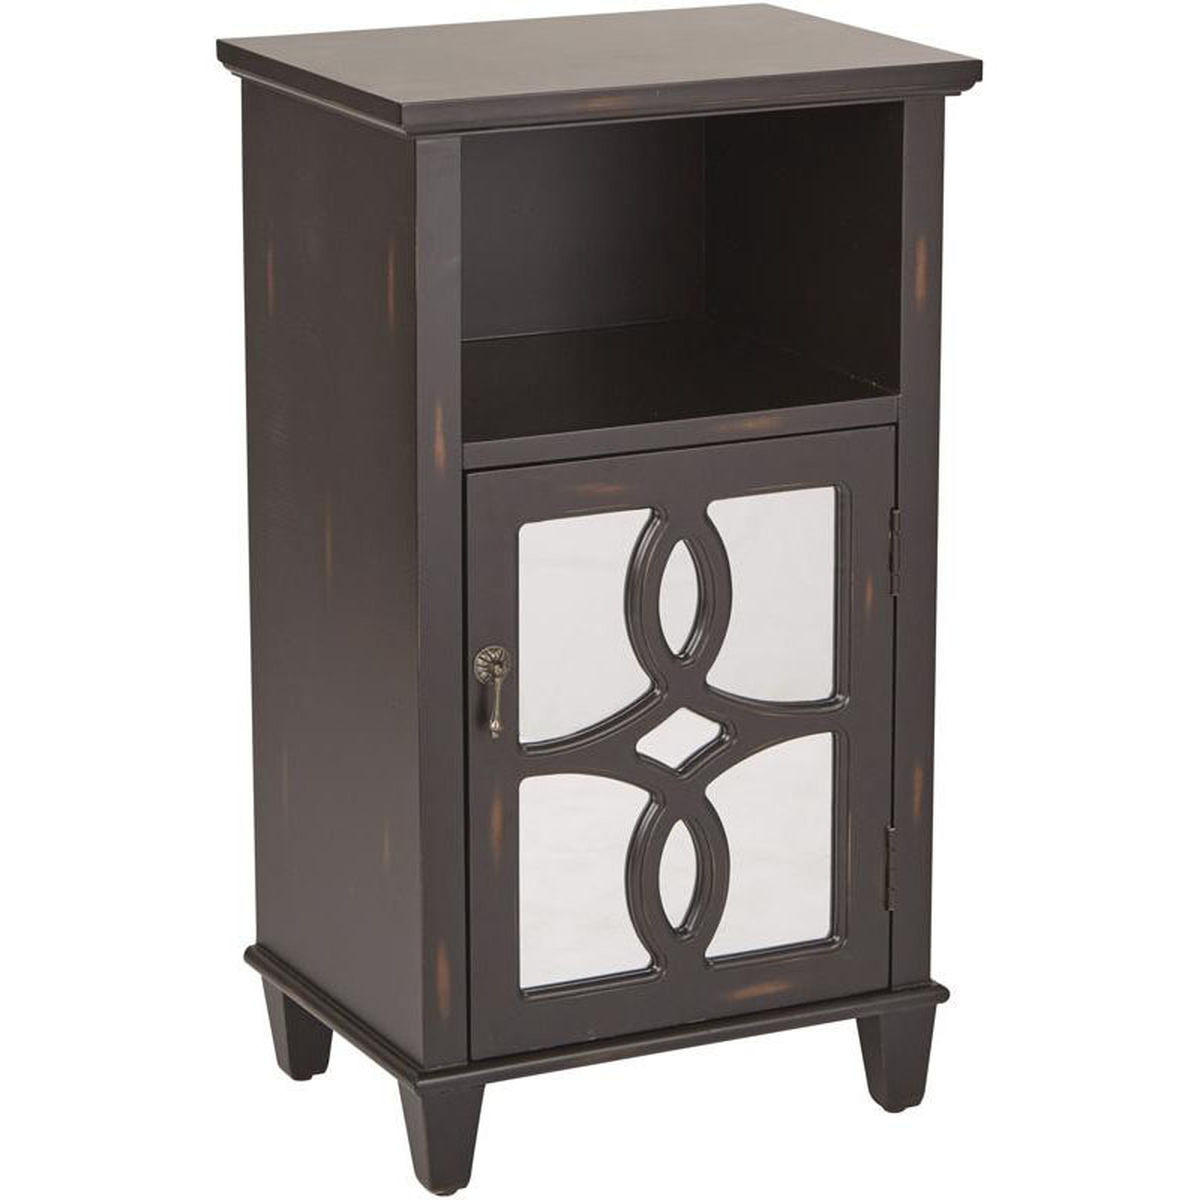 medina black accent table bizchair office star products main painted wood our inspired bassett hand antique now bookcase inch round decorator monarch grey big umbrellas for shade